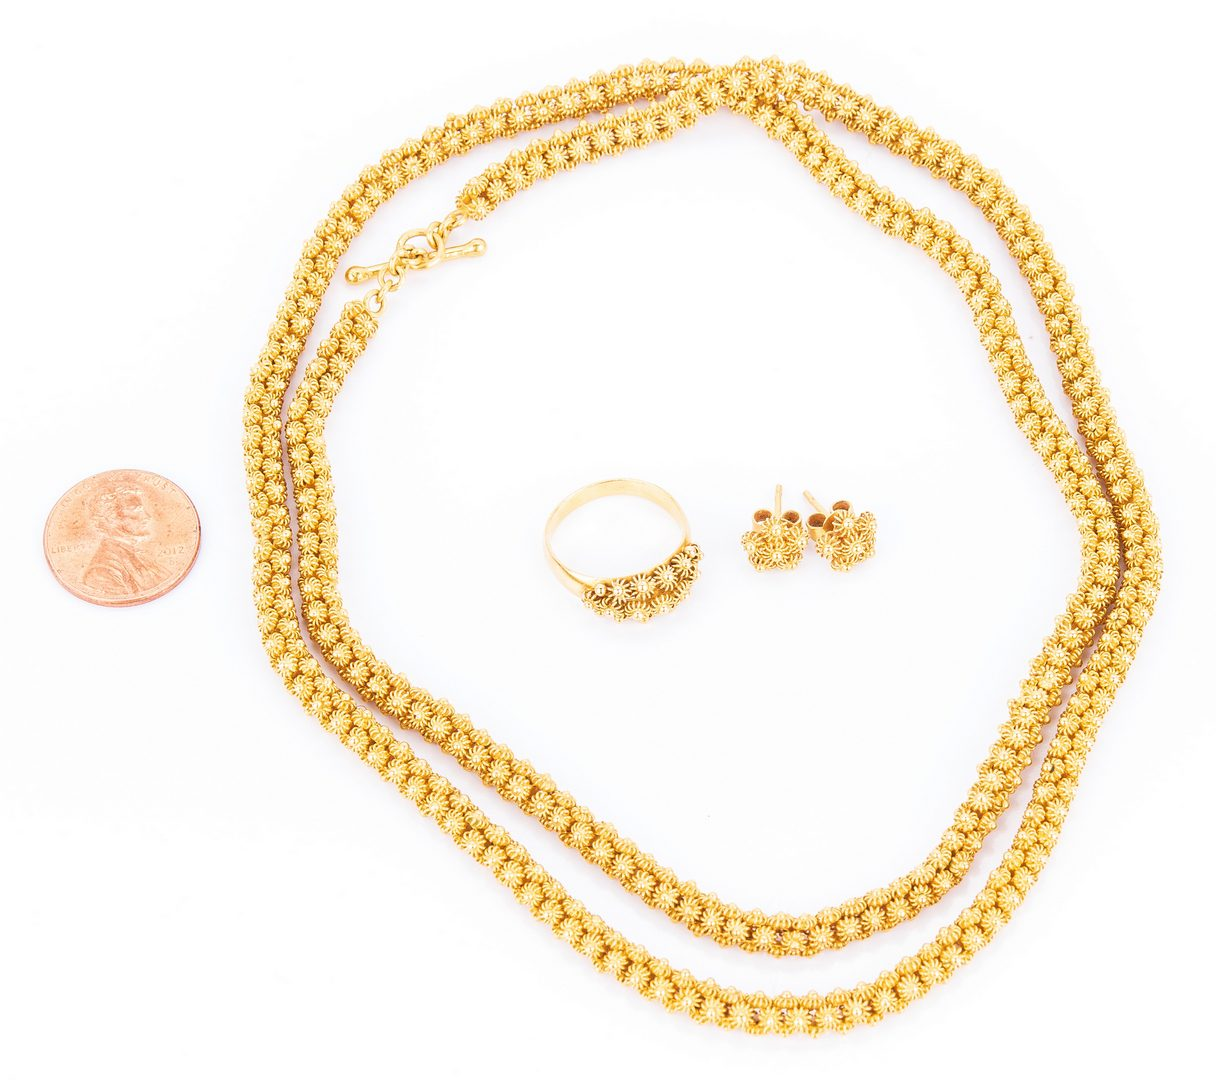 Lot 28: Set 22K Gold Jewelry, 79.2 grams